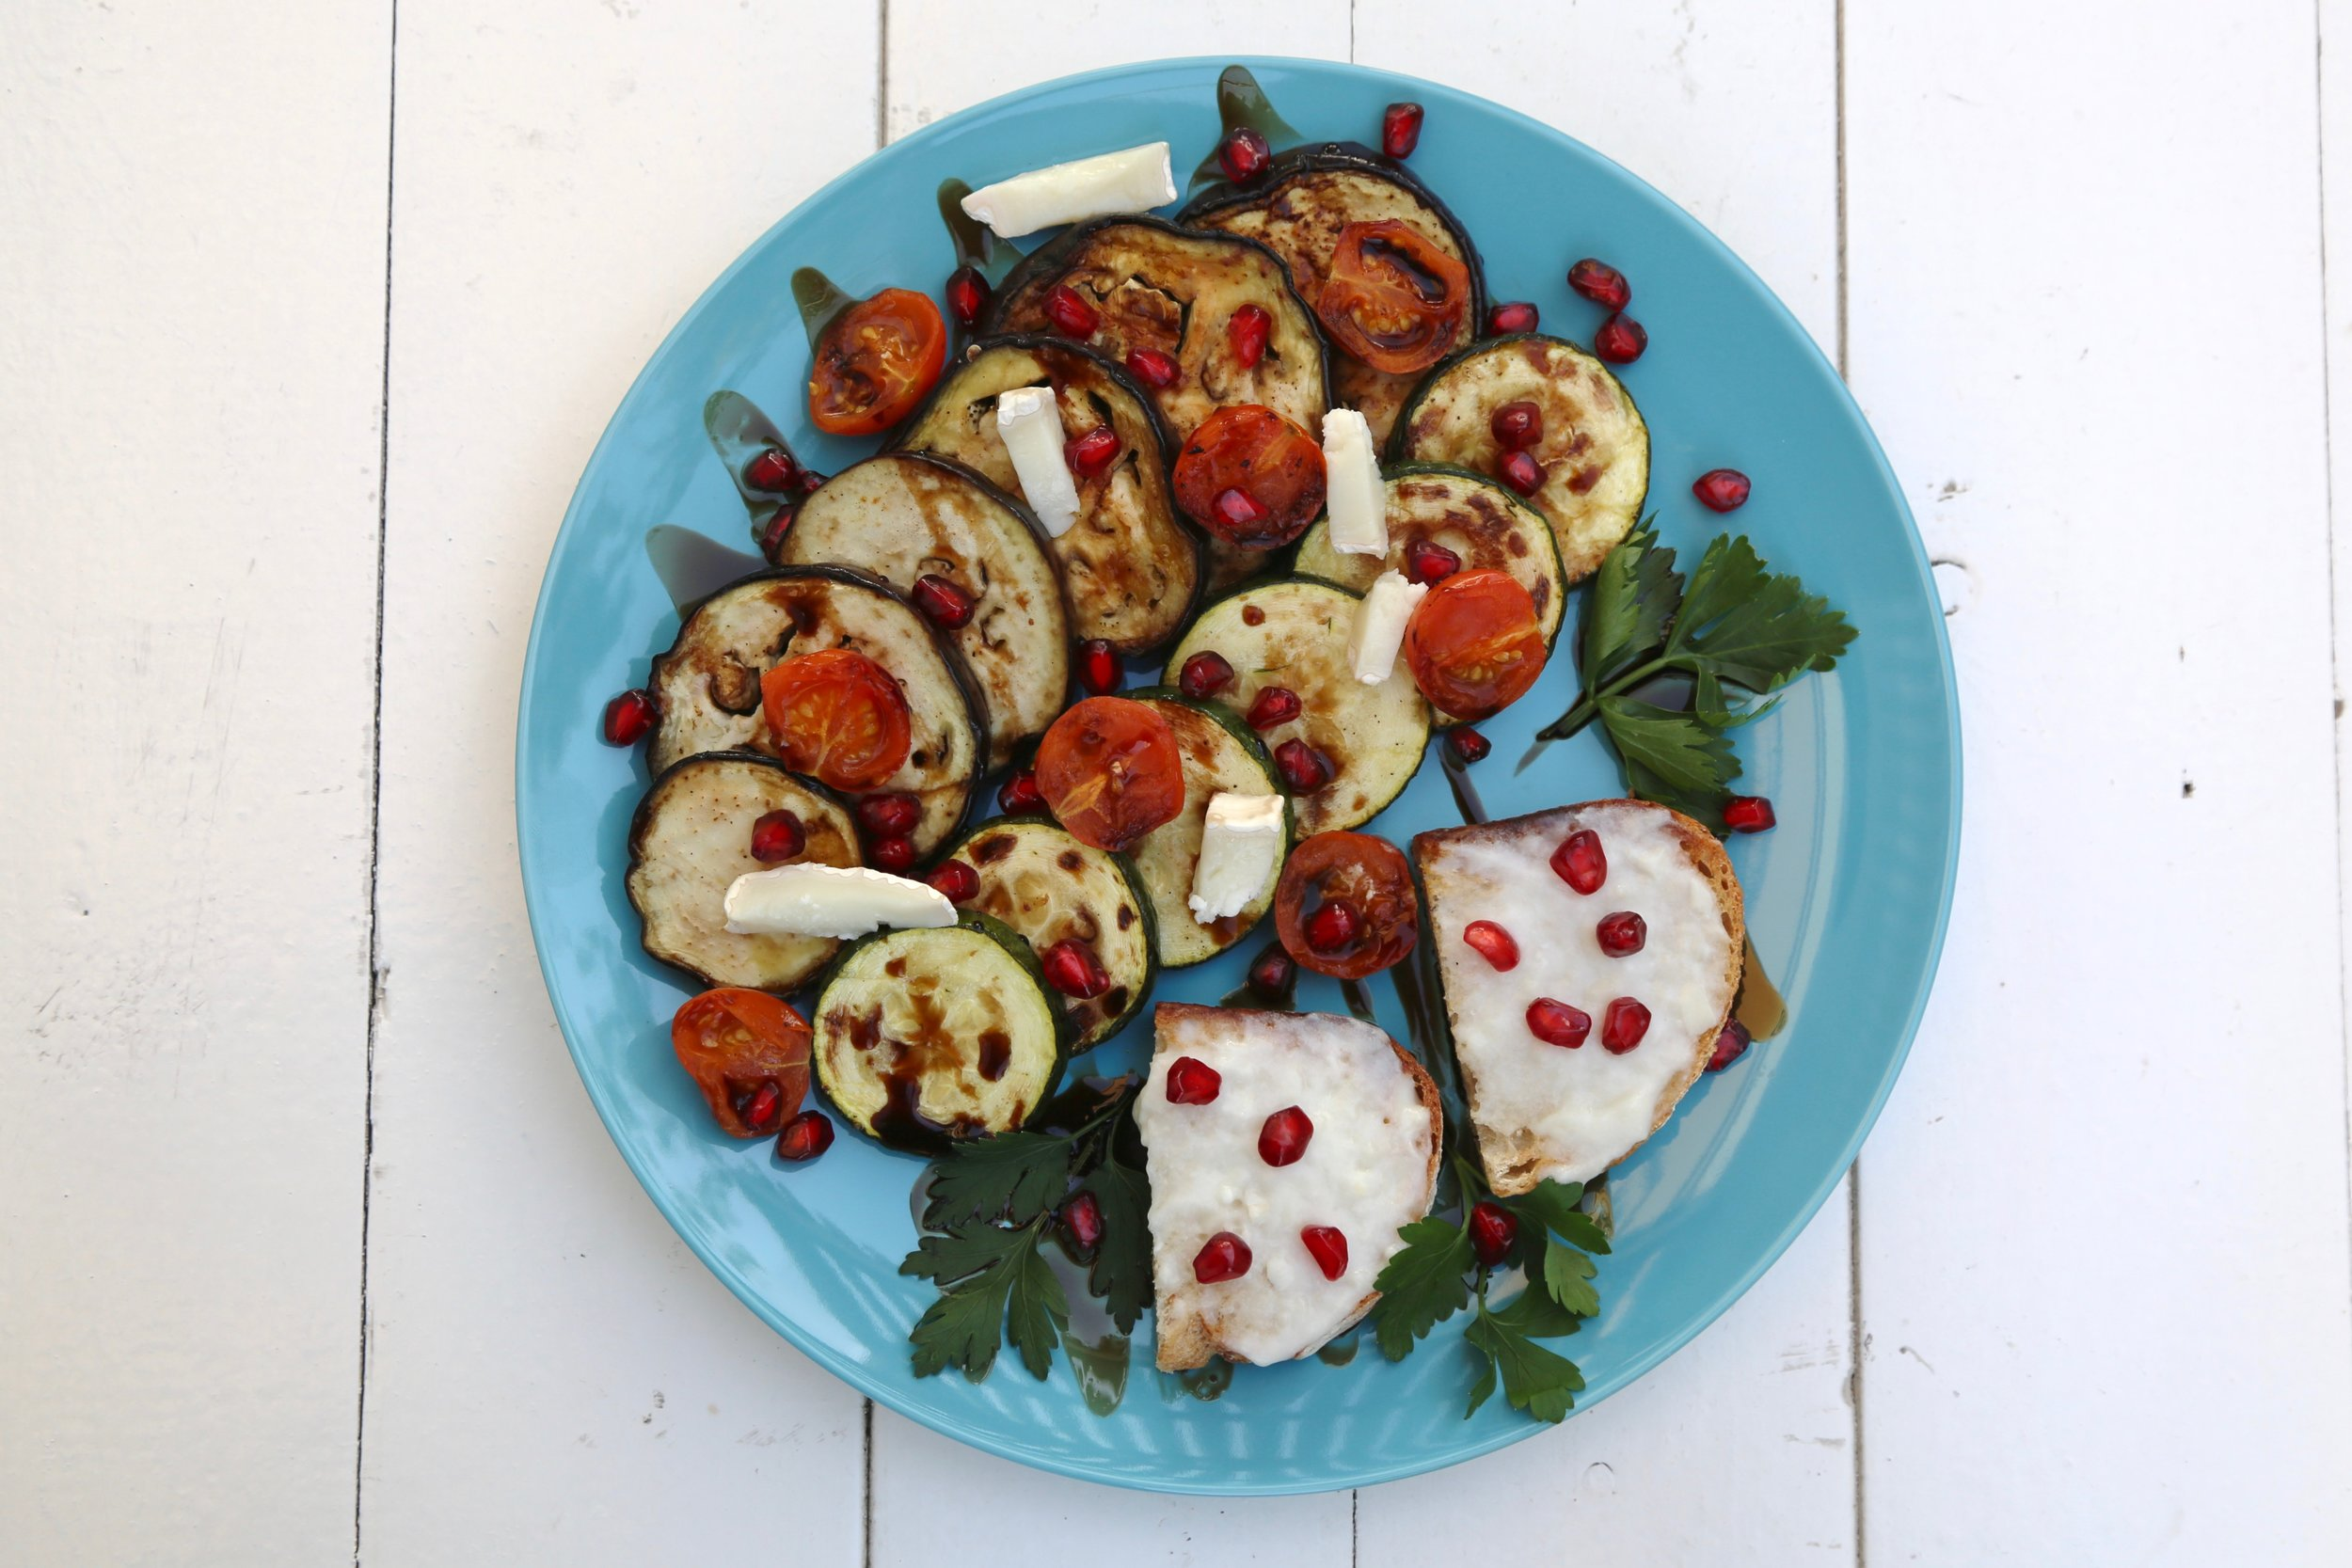 Grilled Vegetables: Zucchini, eggplant, cherry tomatoes, with goat cheese tartines on the side